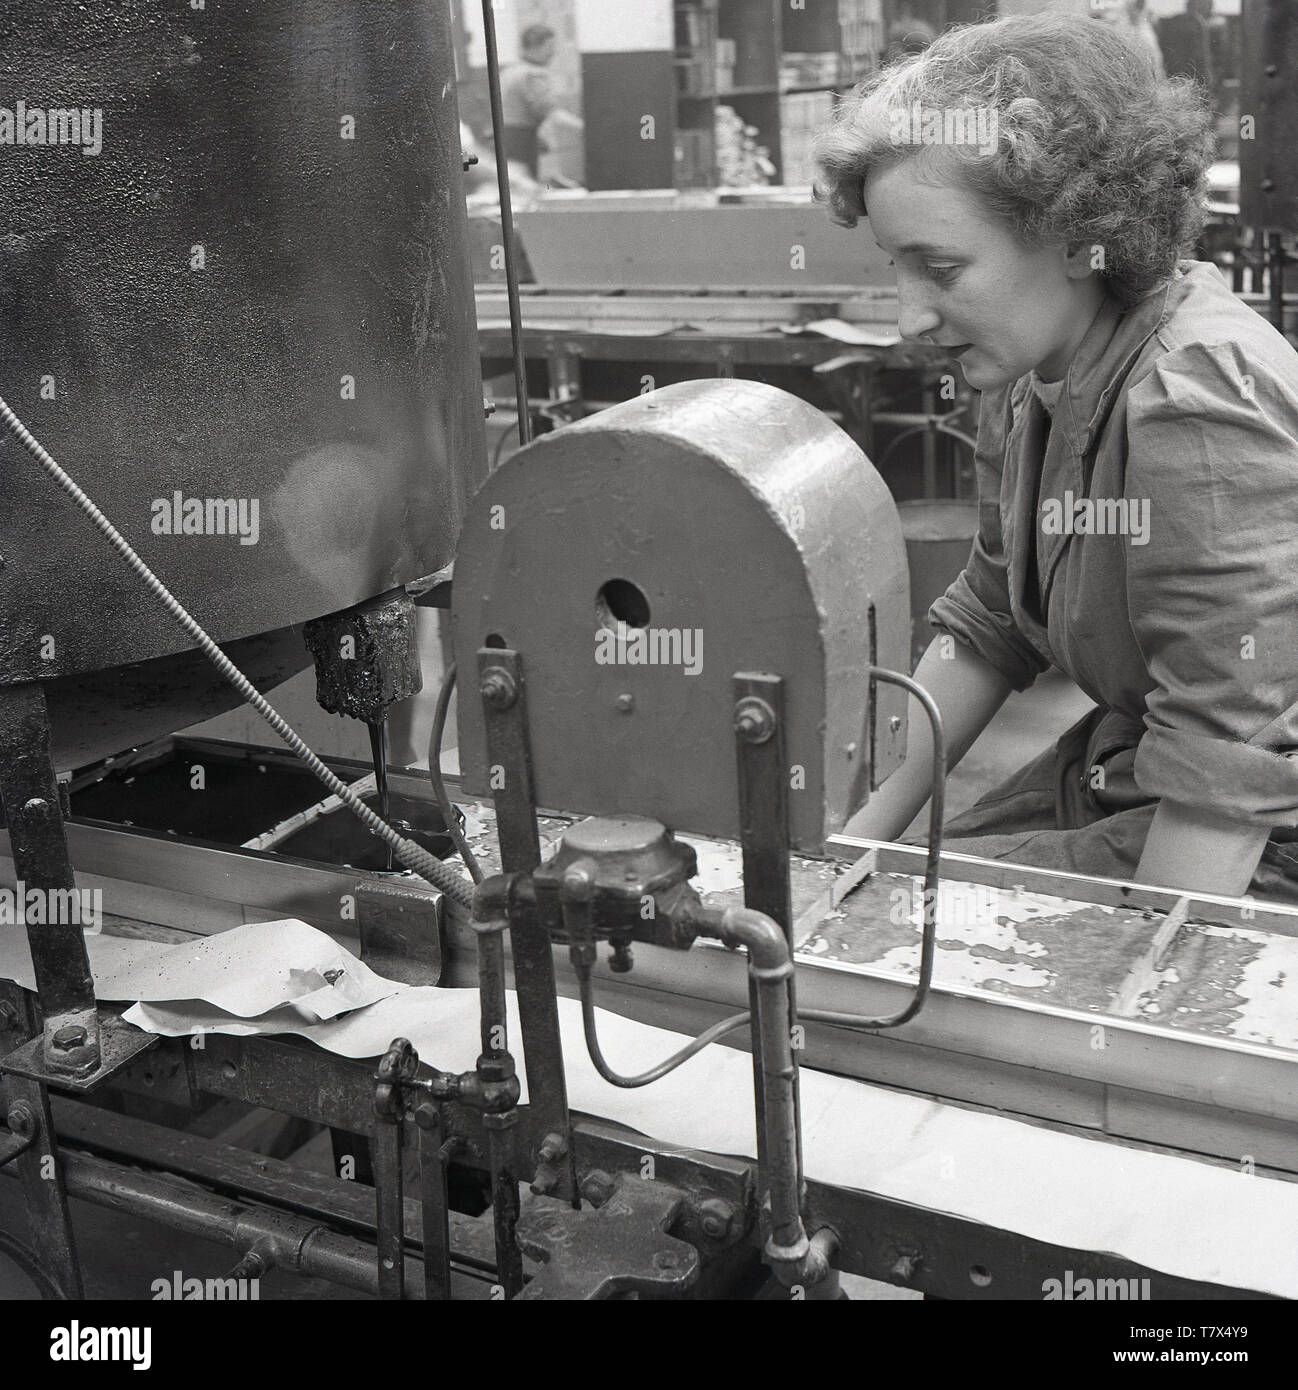 1950s, historical, a lady worker on the production line at the Ever Ready battery factory at Forest Road, Walthamstow, London, England, UK. Woman entered the industrial workforce in large numbers during the WW2 and many stayed on after the war ended. The factory specialised in the manufacture of dry batteries for radios.. By 1963 Ever Ready had 28 factories in the UK employing over 12,000 people. - Stock Image